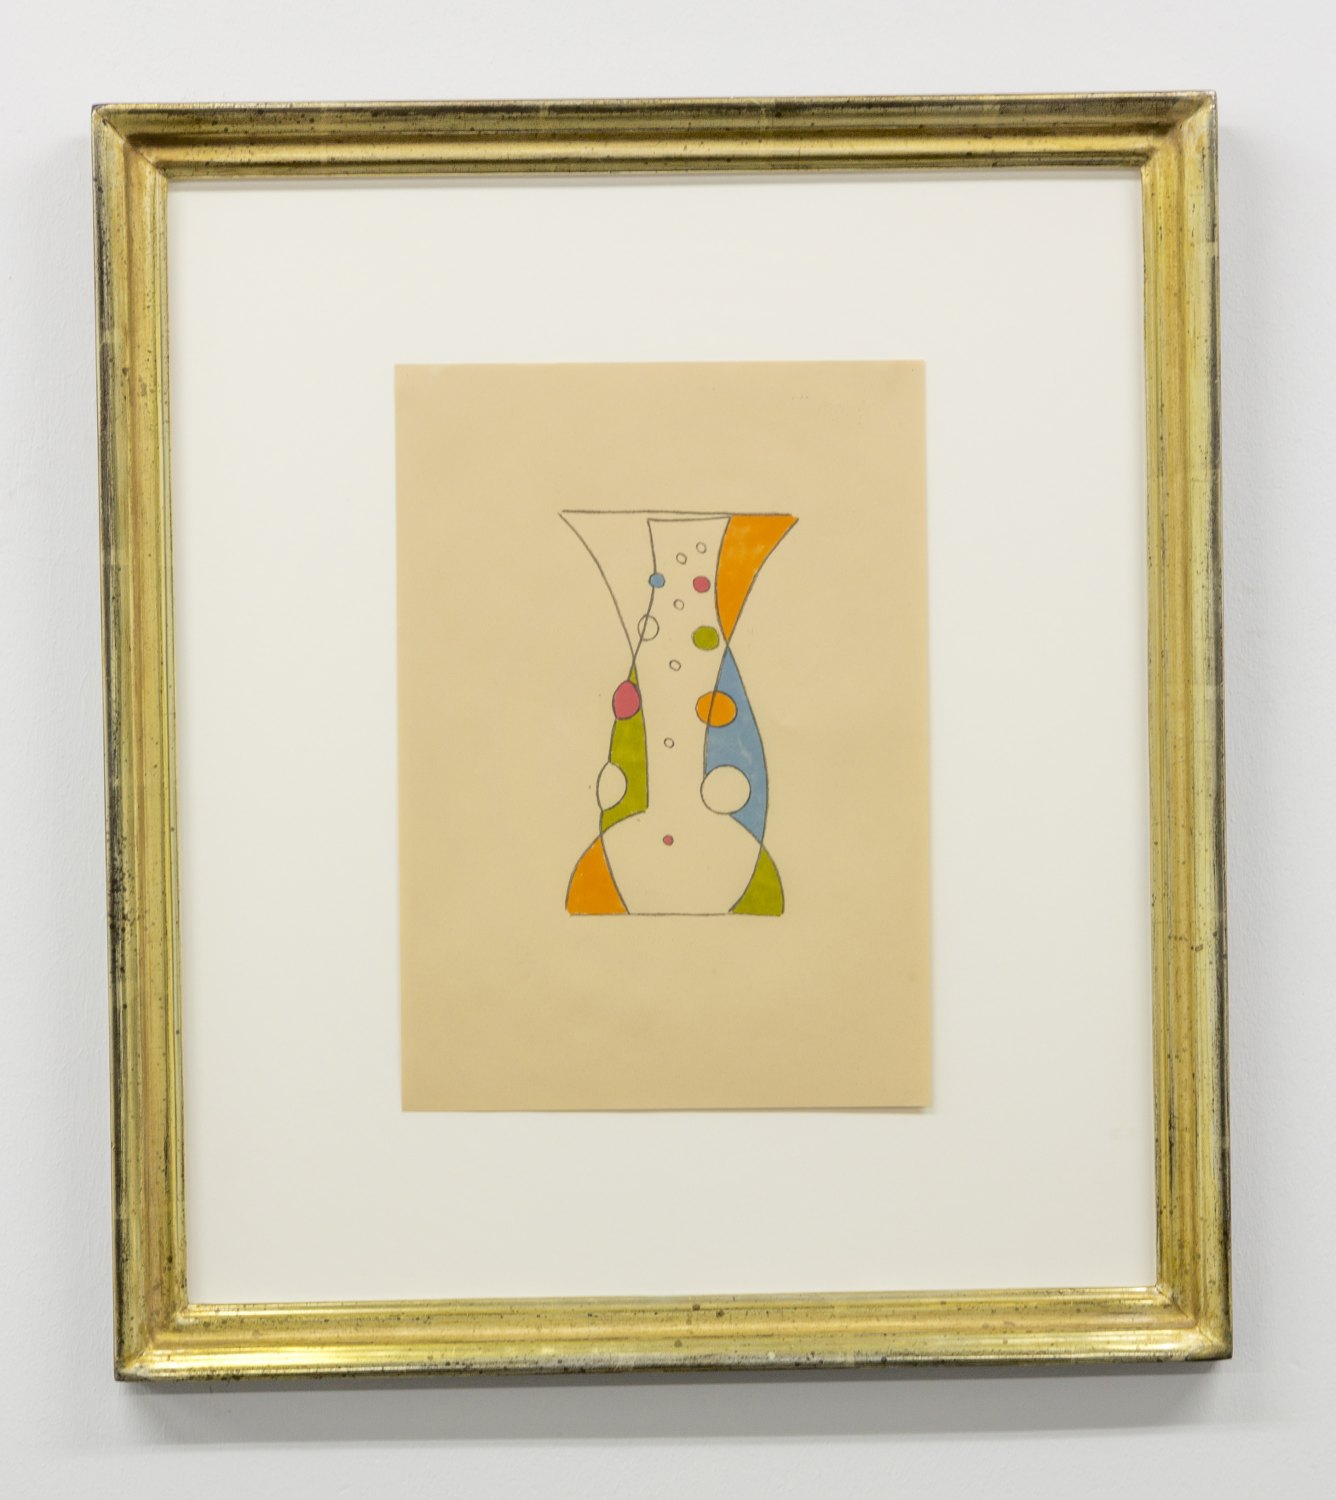 Marc Camille Chaimowicz Untitled, 2014 Mixed media on paper, 29.7 × 21 cm